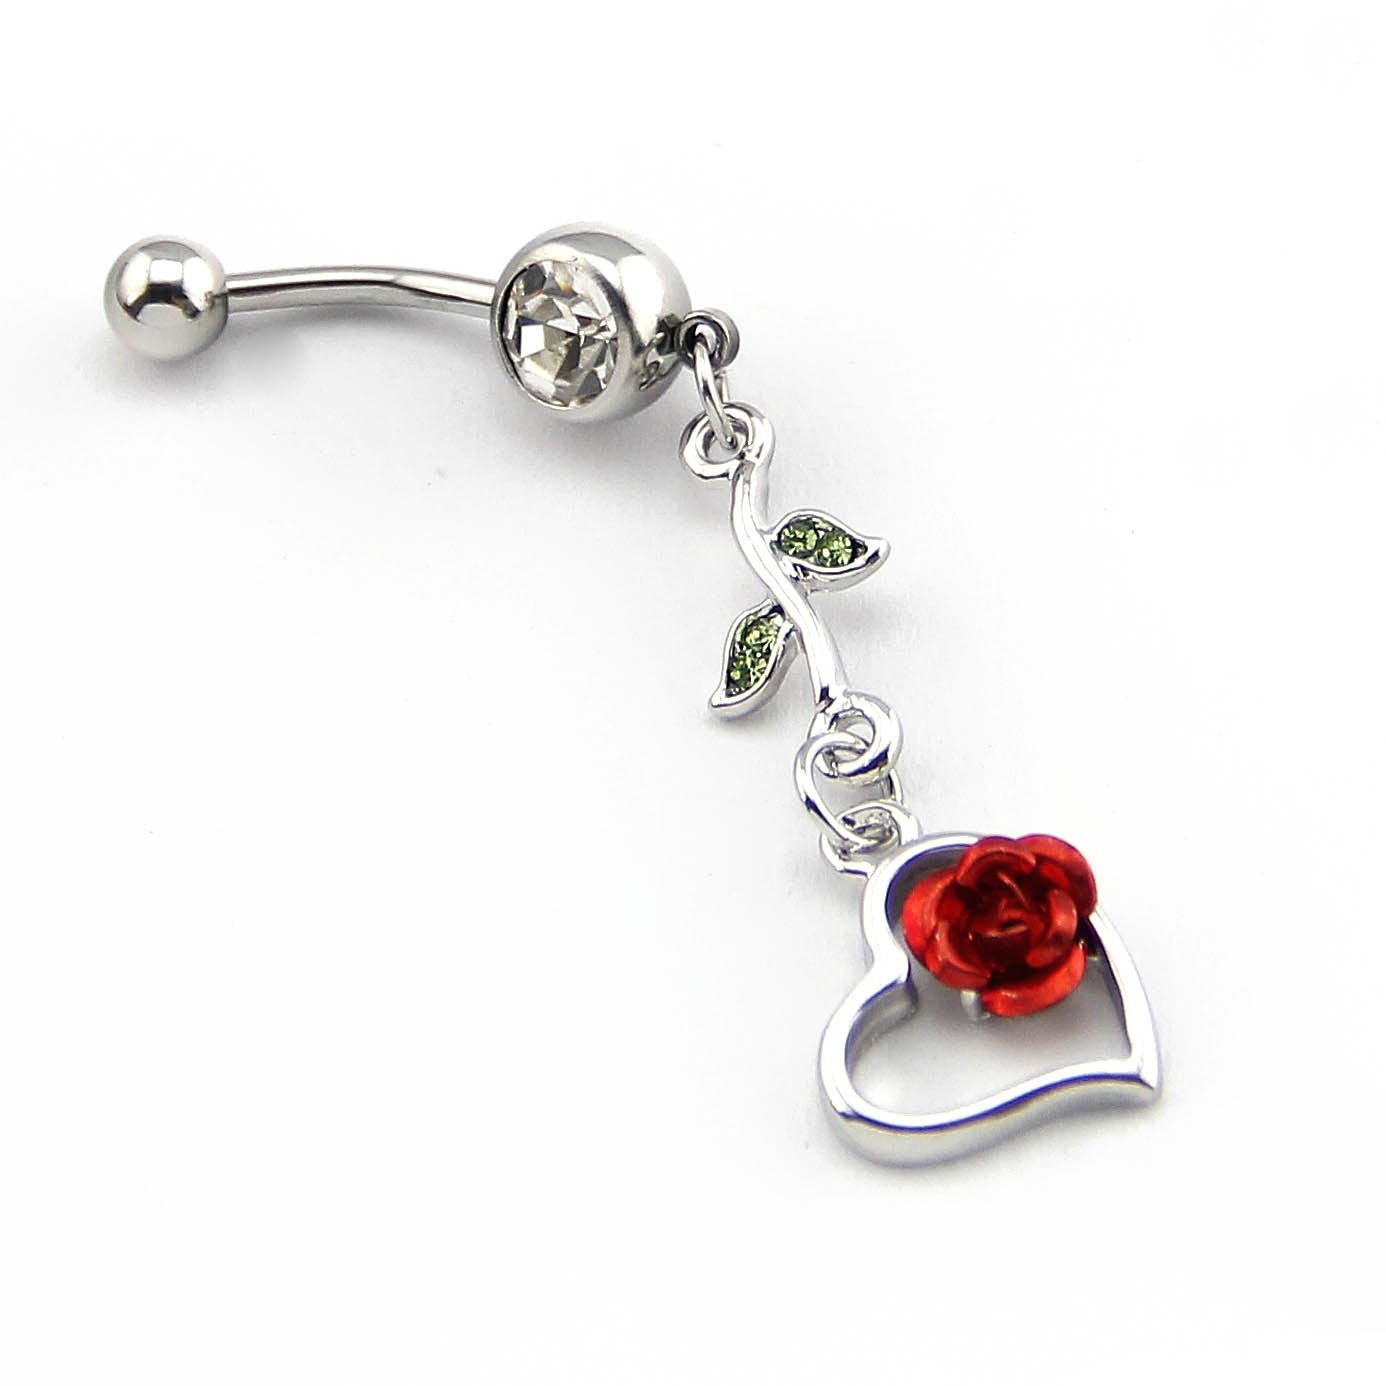 BODYA 316l Surgical Steel 14g Crystal Red Rose with Leaf Heart Navel Ring Belly Bar Button+retainer JW736